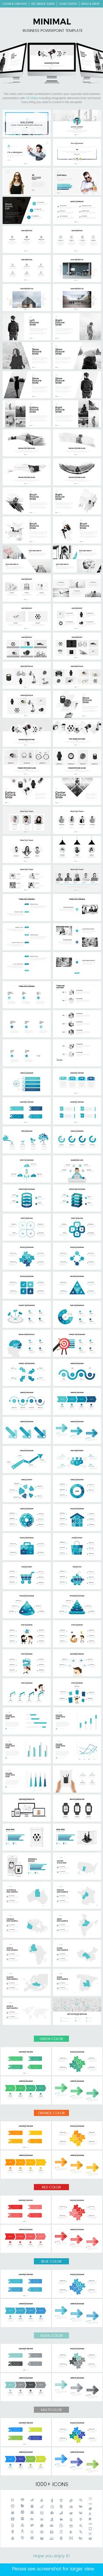 Minimal Business Powerpoint Template